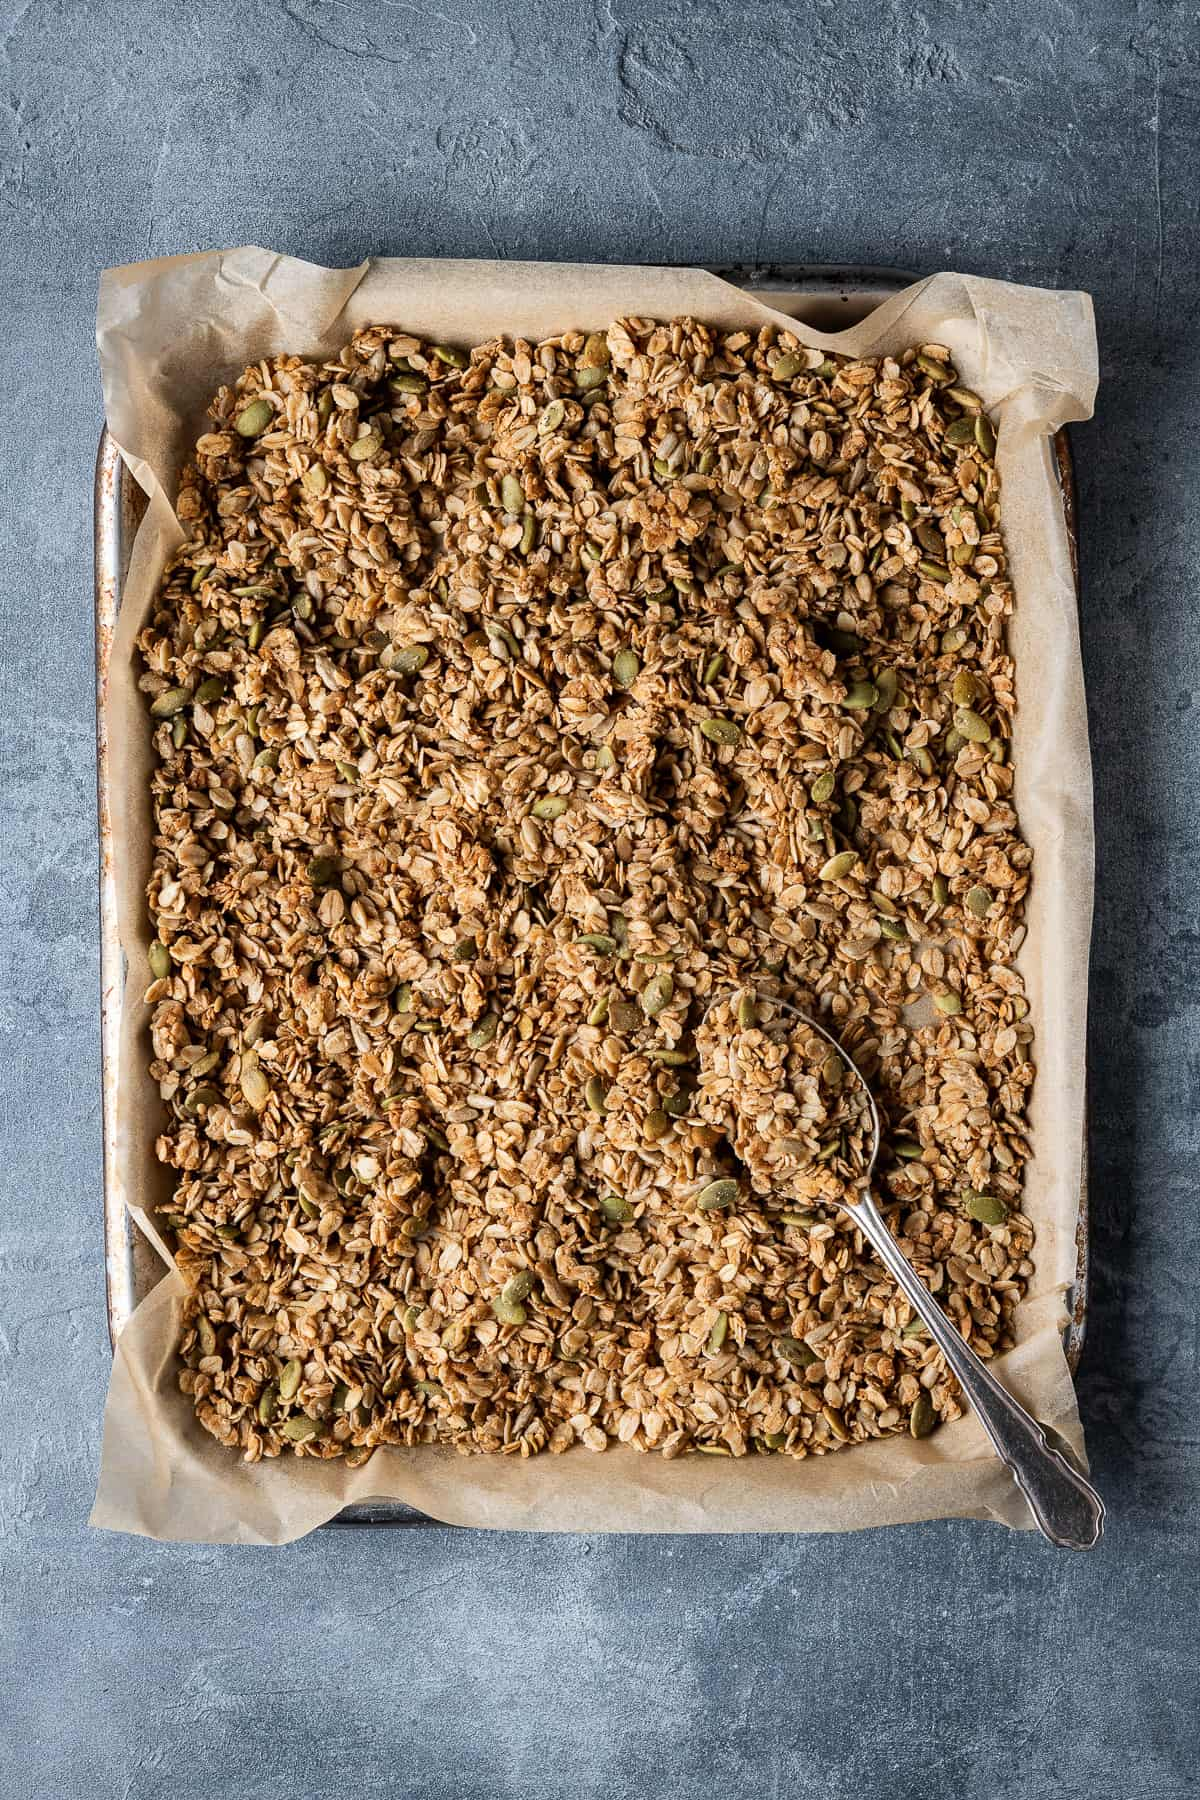 A baking parchment lined tray of granola on a grey background.